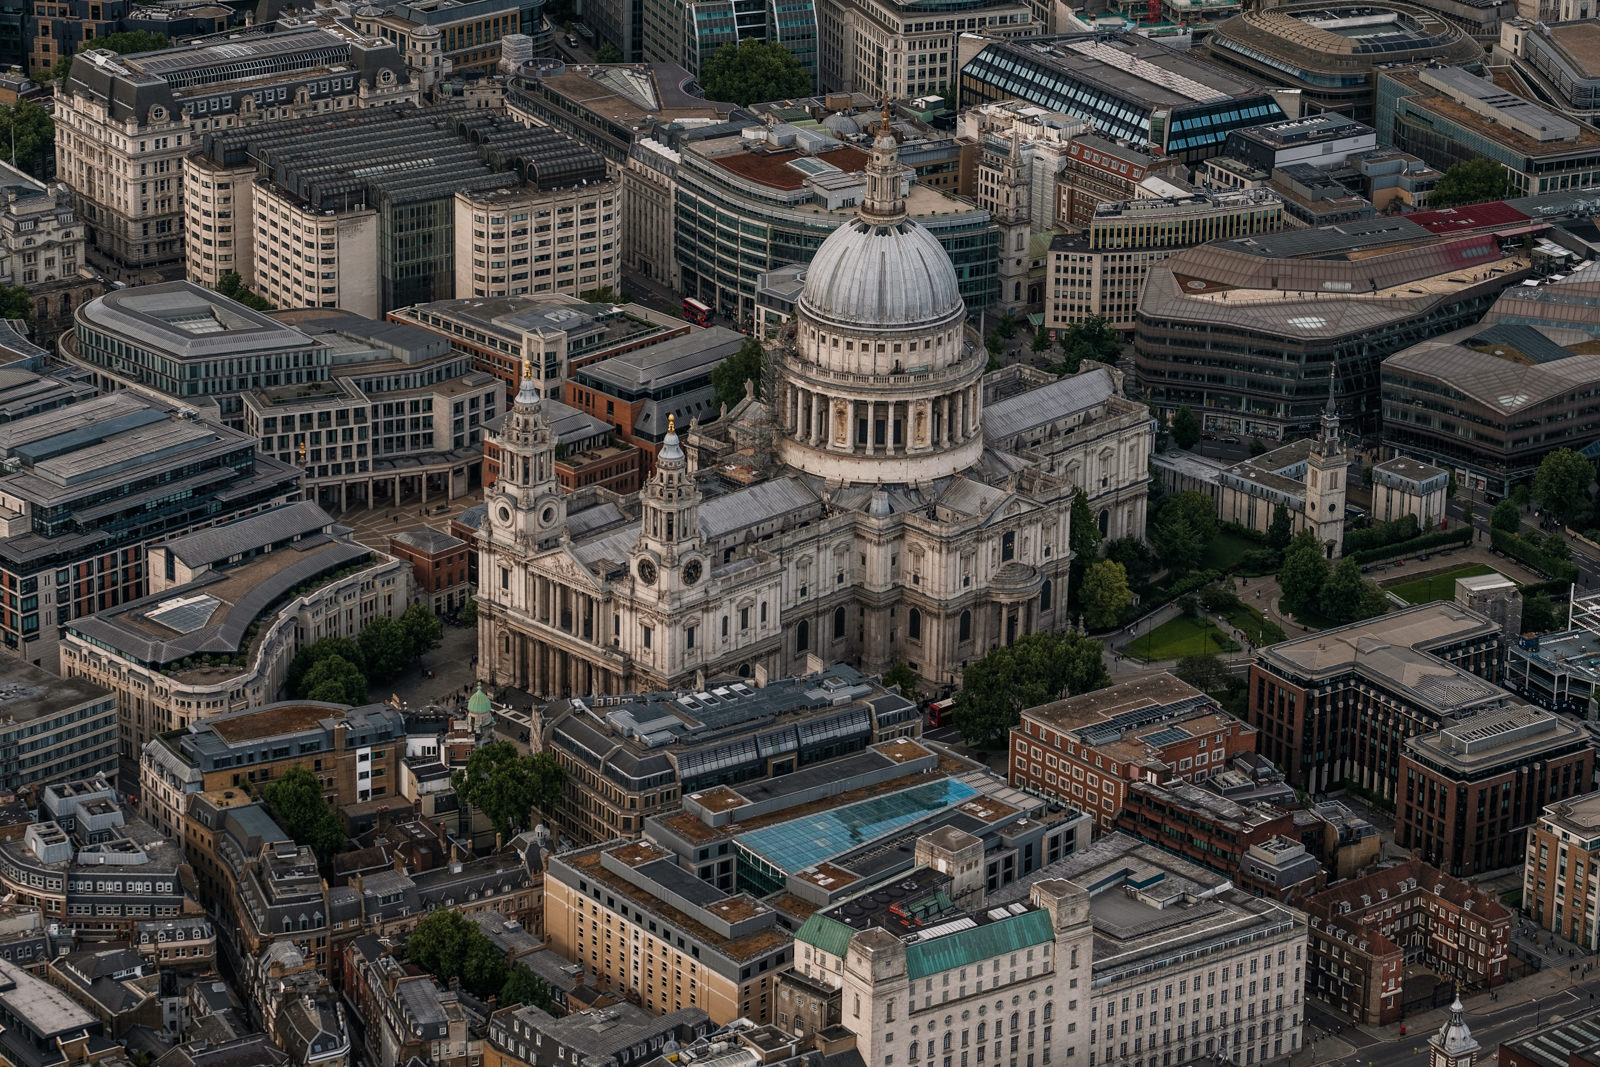 St. Paul's Cathedral - with 50-140mm f2.8 @115mm, f2.8, iso400, 1/1000swith 50-140mm f2.8 @64mm, f4.5, iso200, 1/1000s